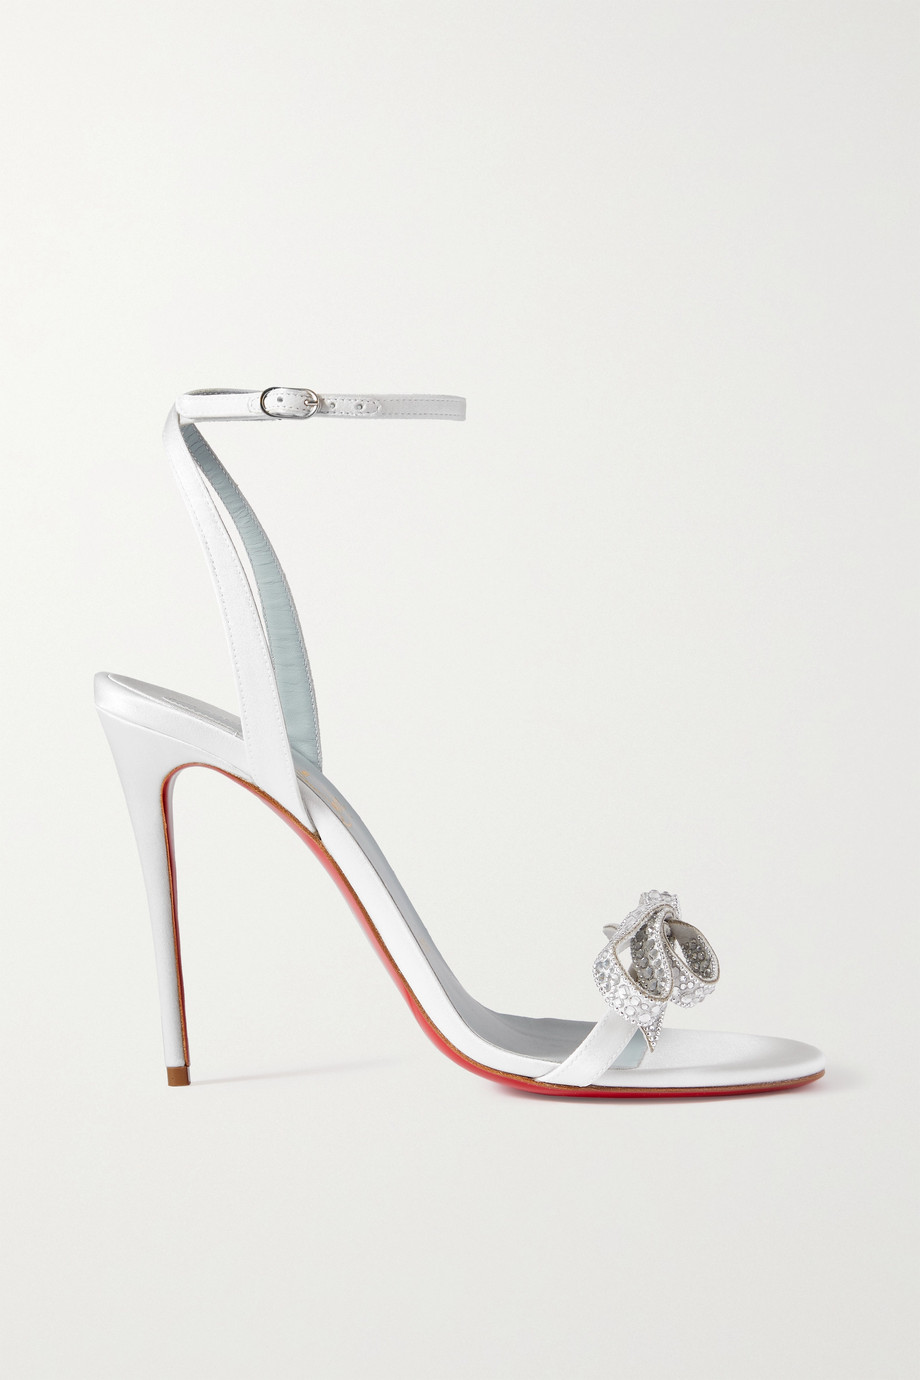 Christian Louboutin Jewel Queen 100 crystal-embellished satin sandals